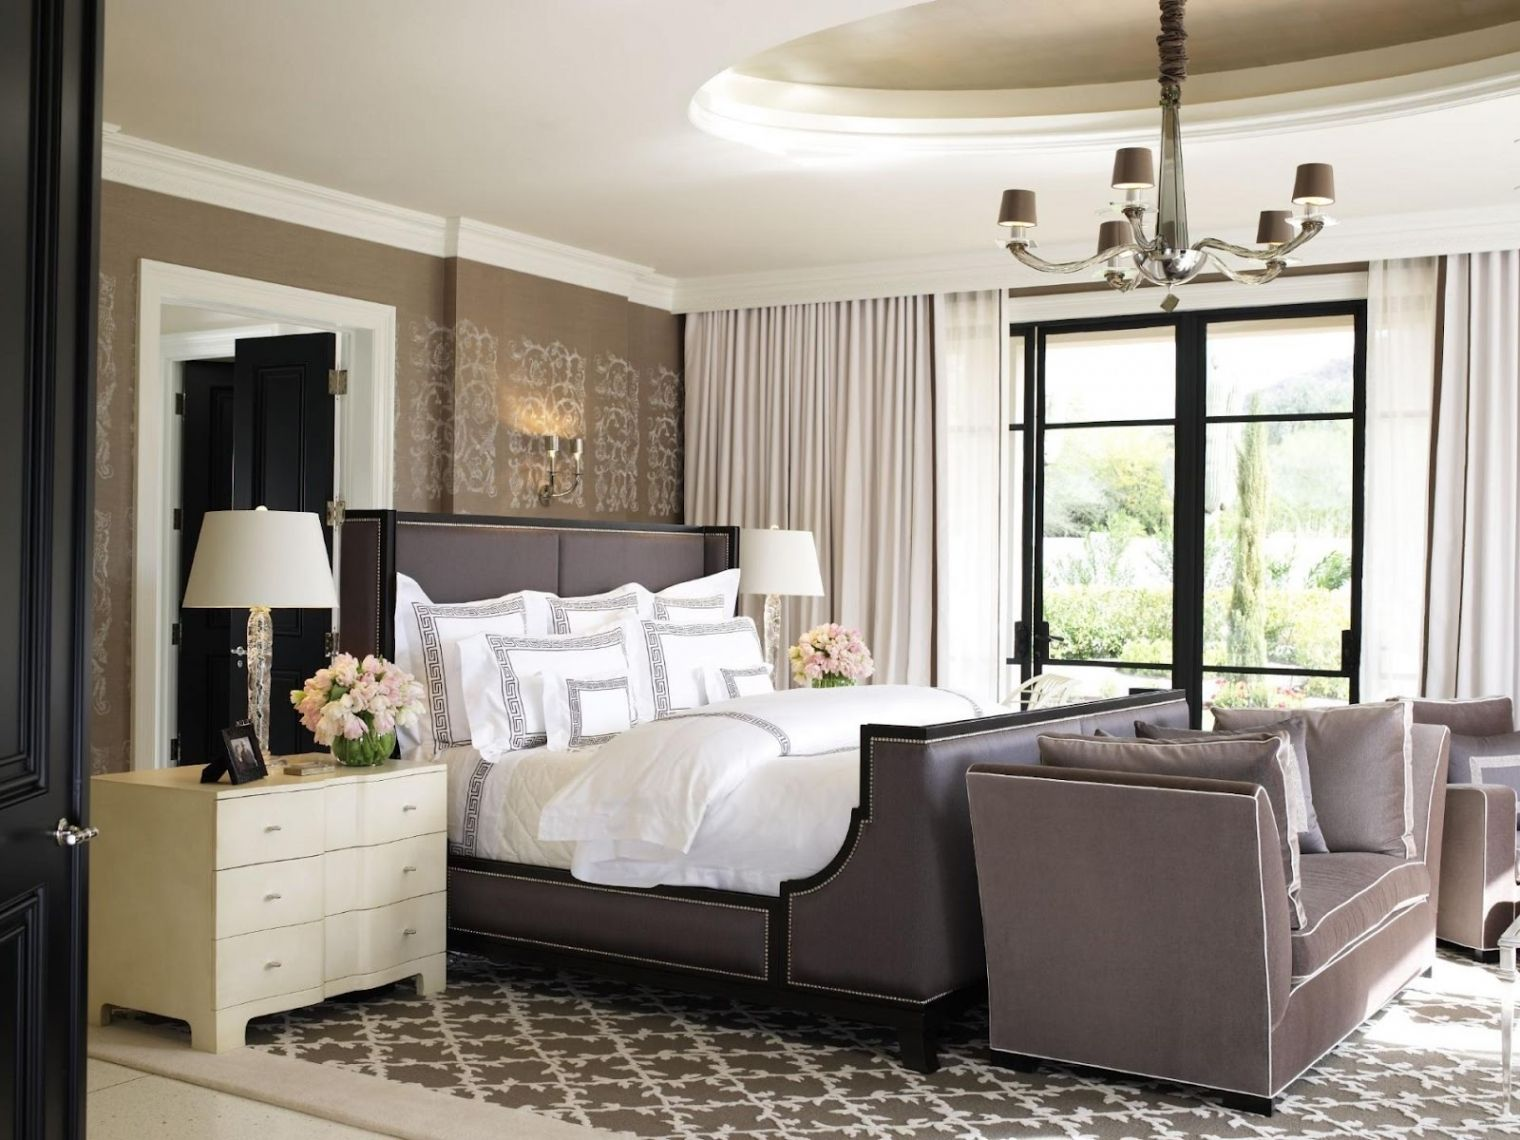 30 Best Trendy and Glamour Cozy Romantic Bed Decor Inspirations http://freshouz.com/trendy-and-glamour-bed-decor/